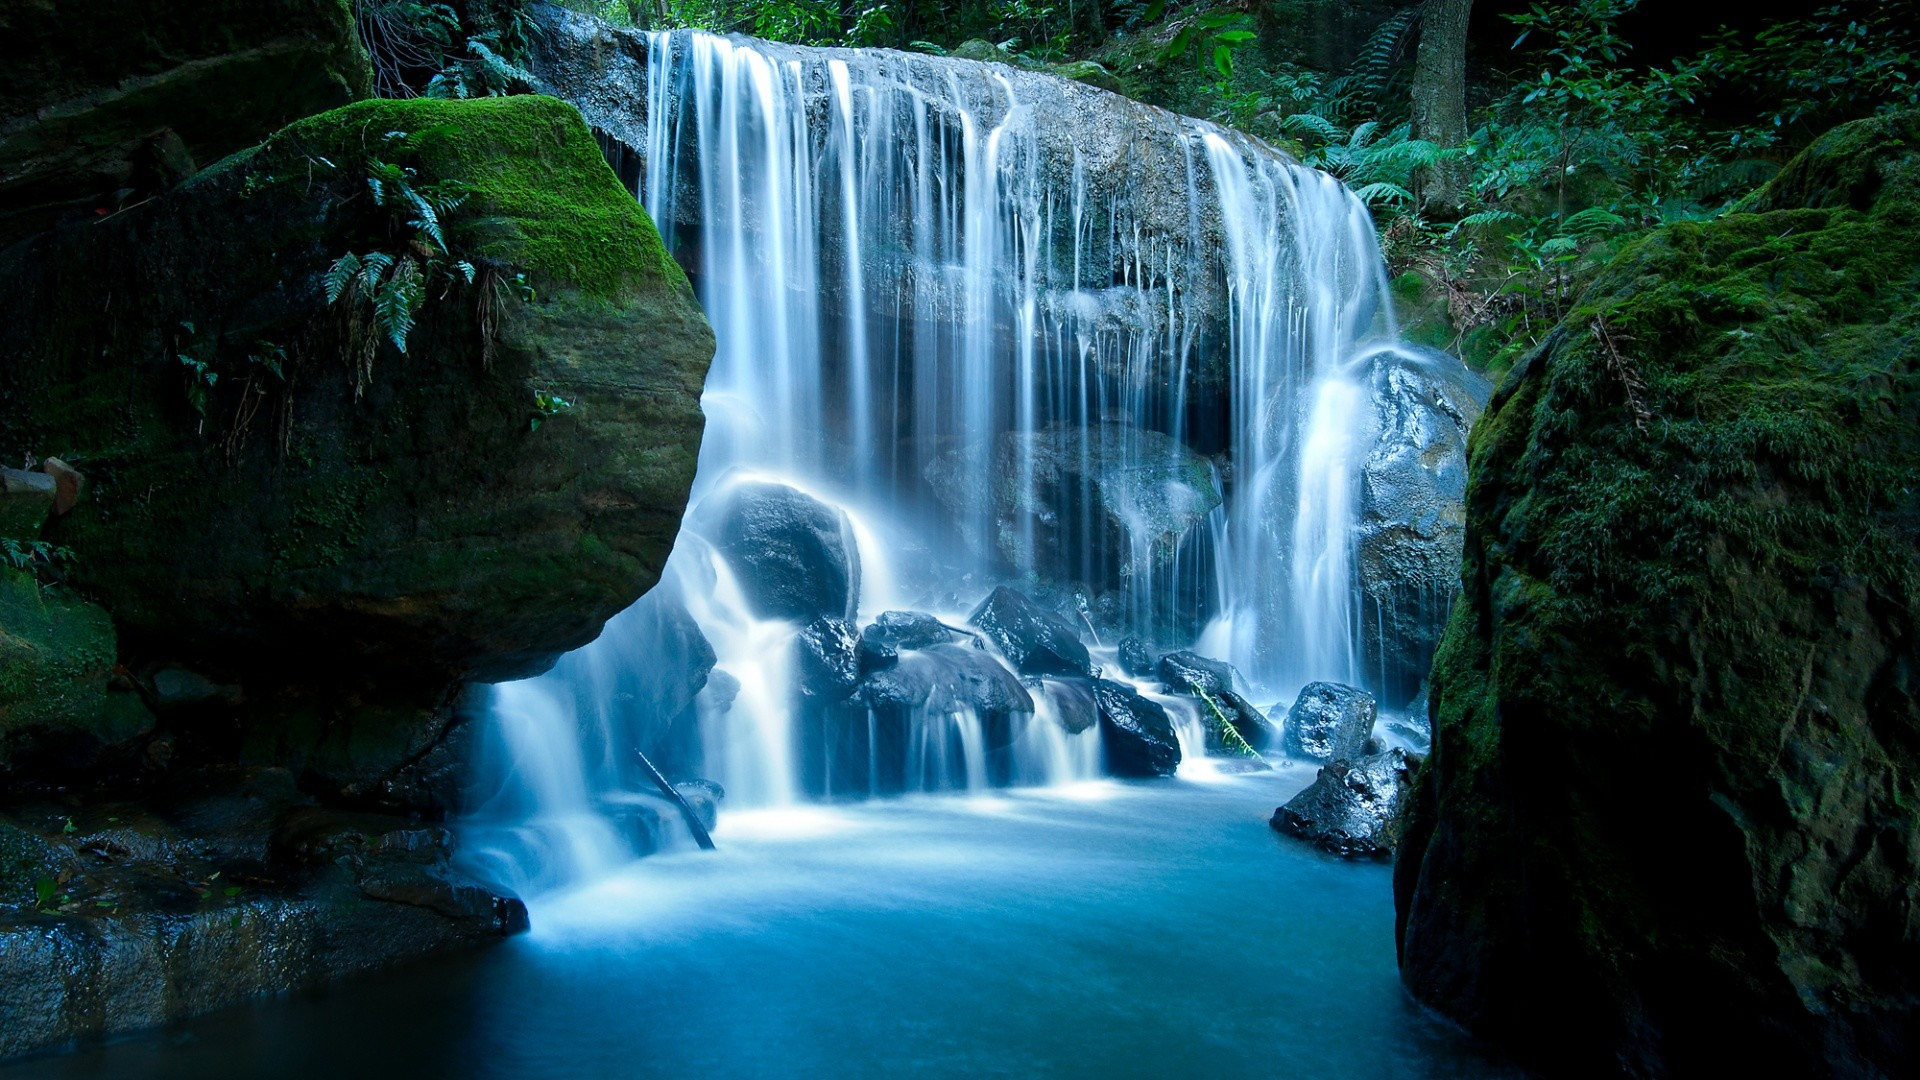 Live Falls Wallpaper Free Download Animated Waterfall Wallpaper With Sound 46 Images